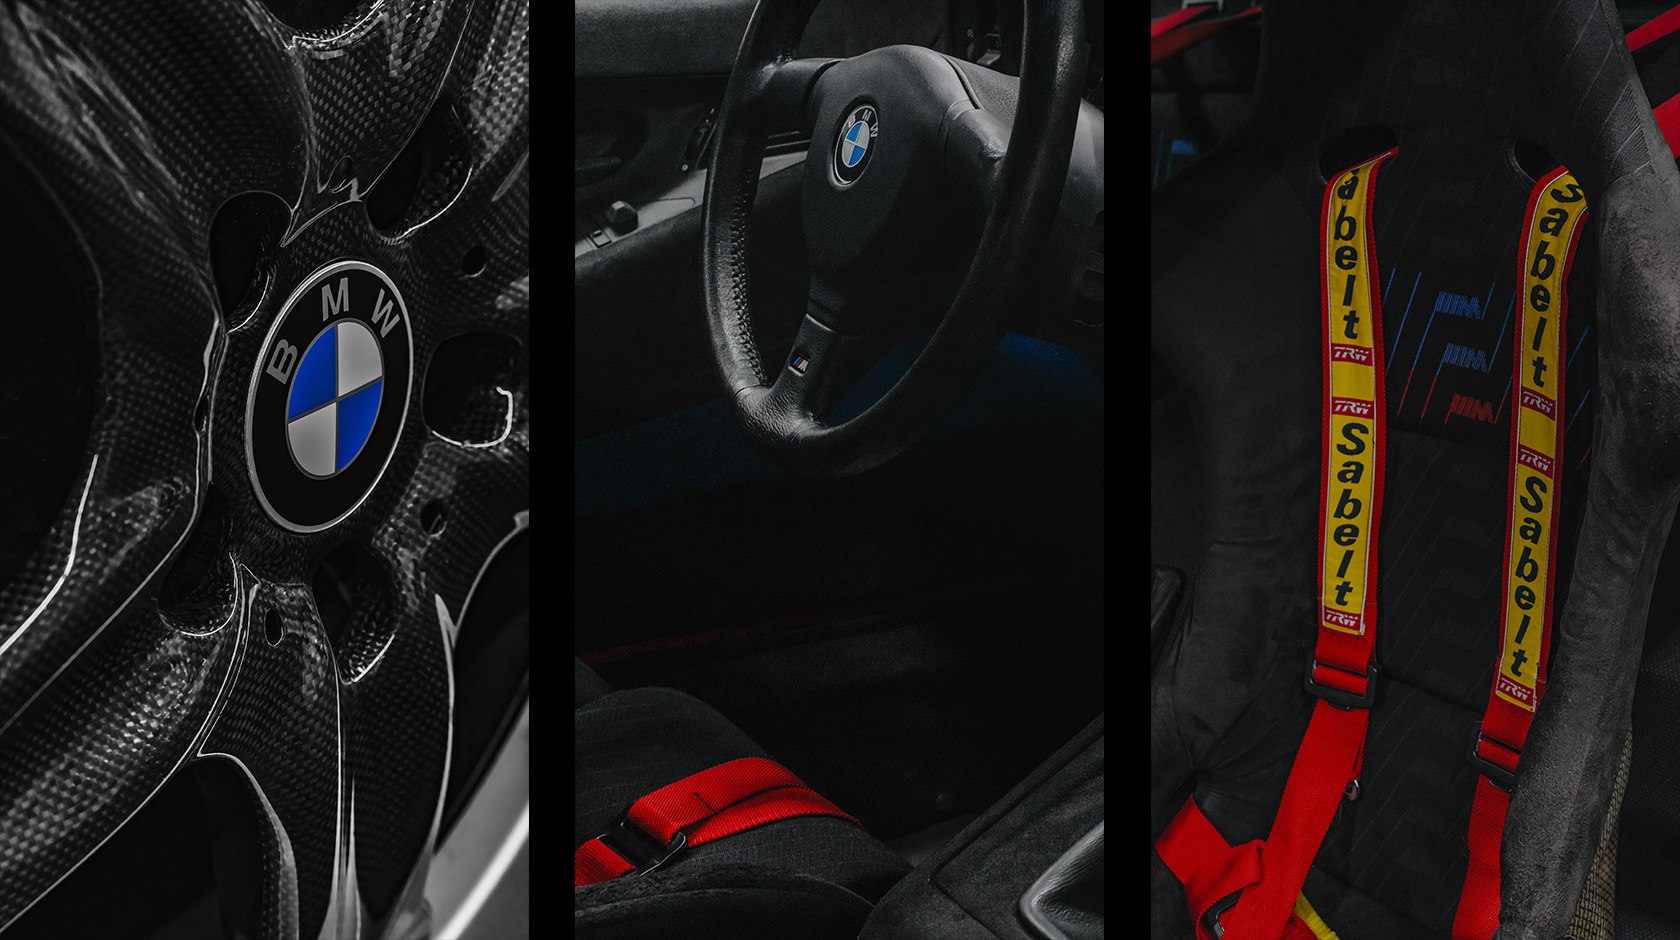 Details shots of the interior of the BMW M8 E31 Prototype